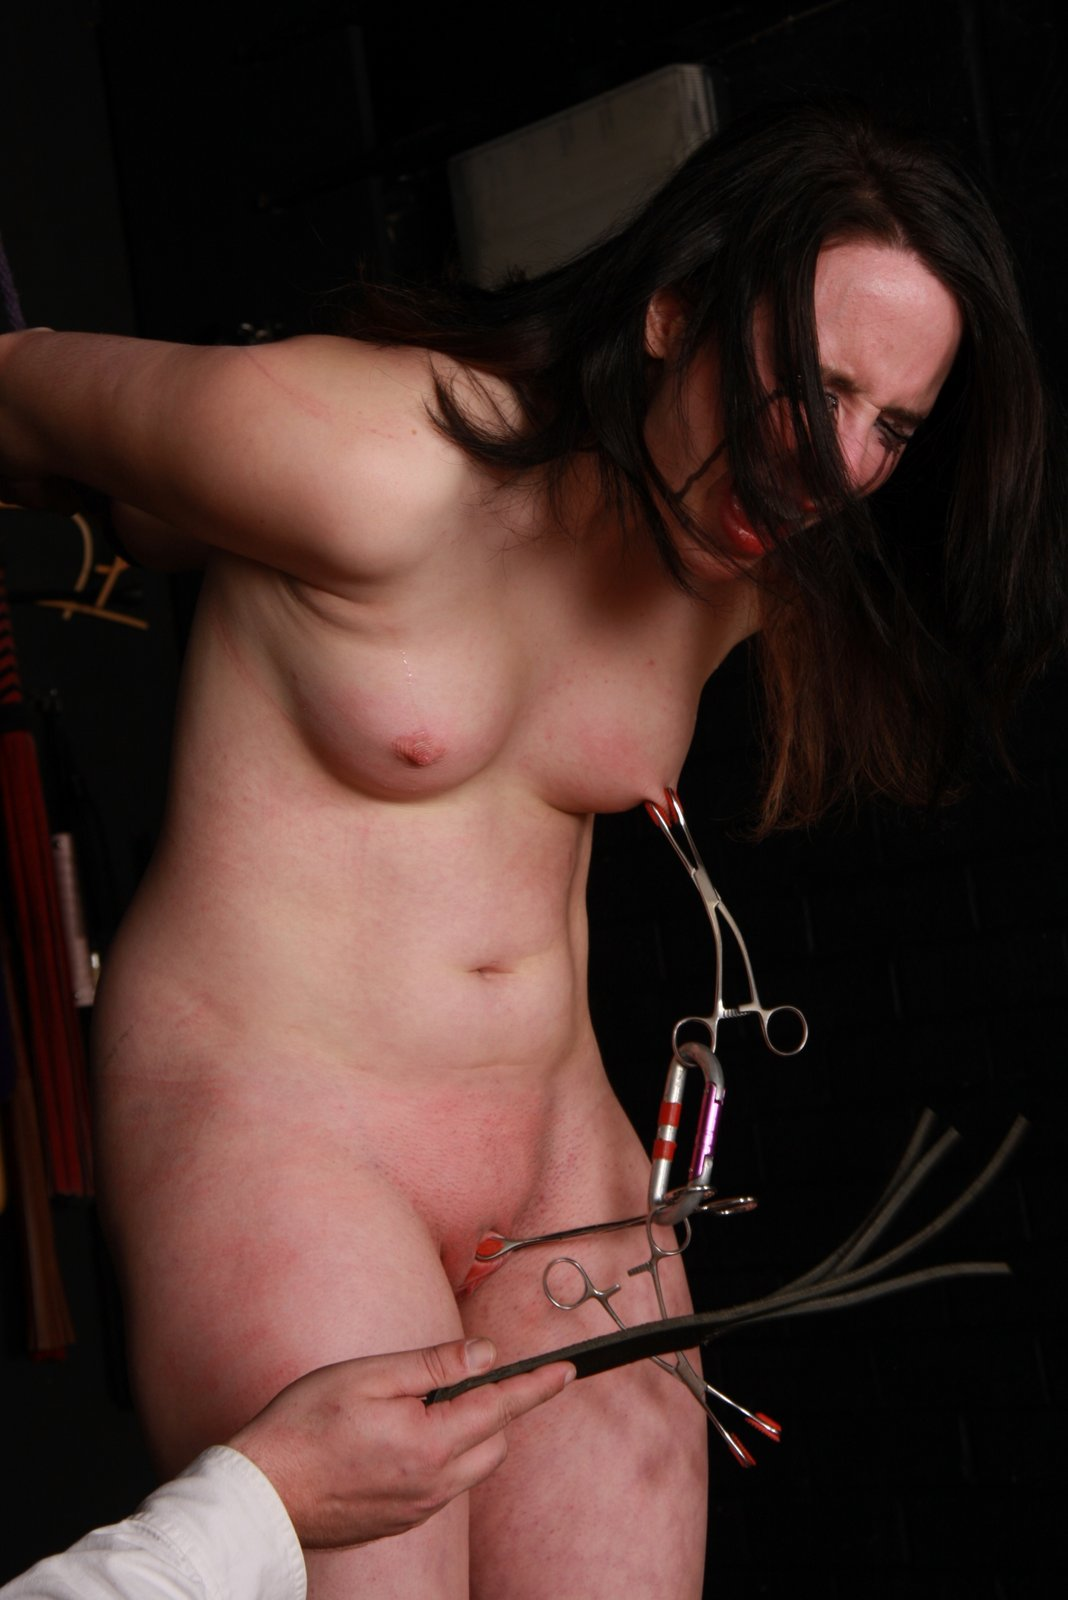 Remarkable idea Women in bdsm crying final